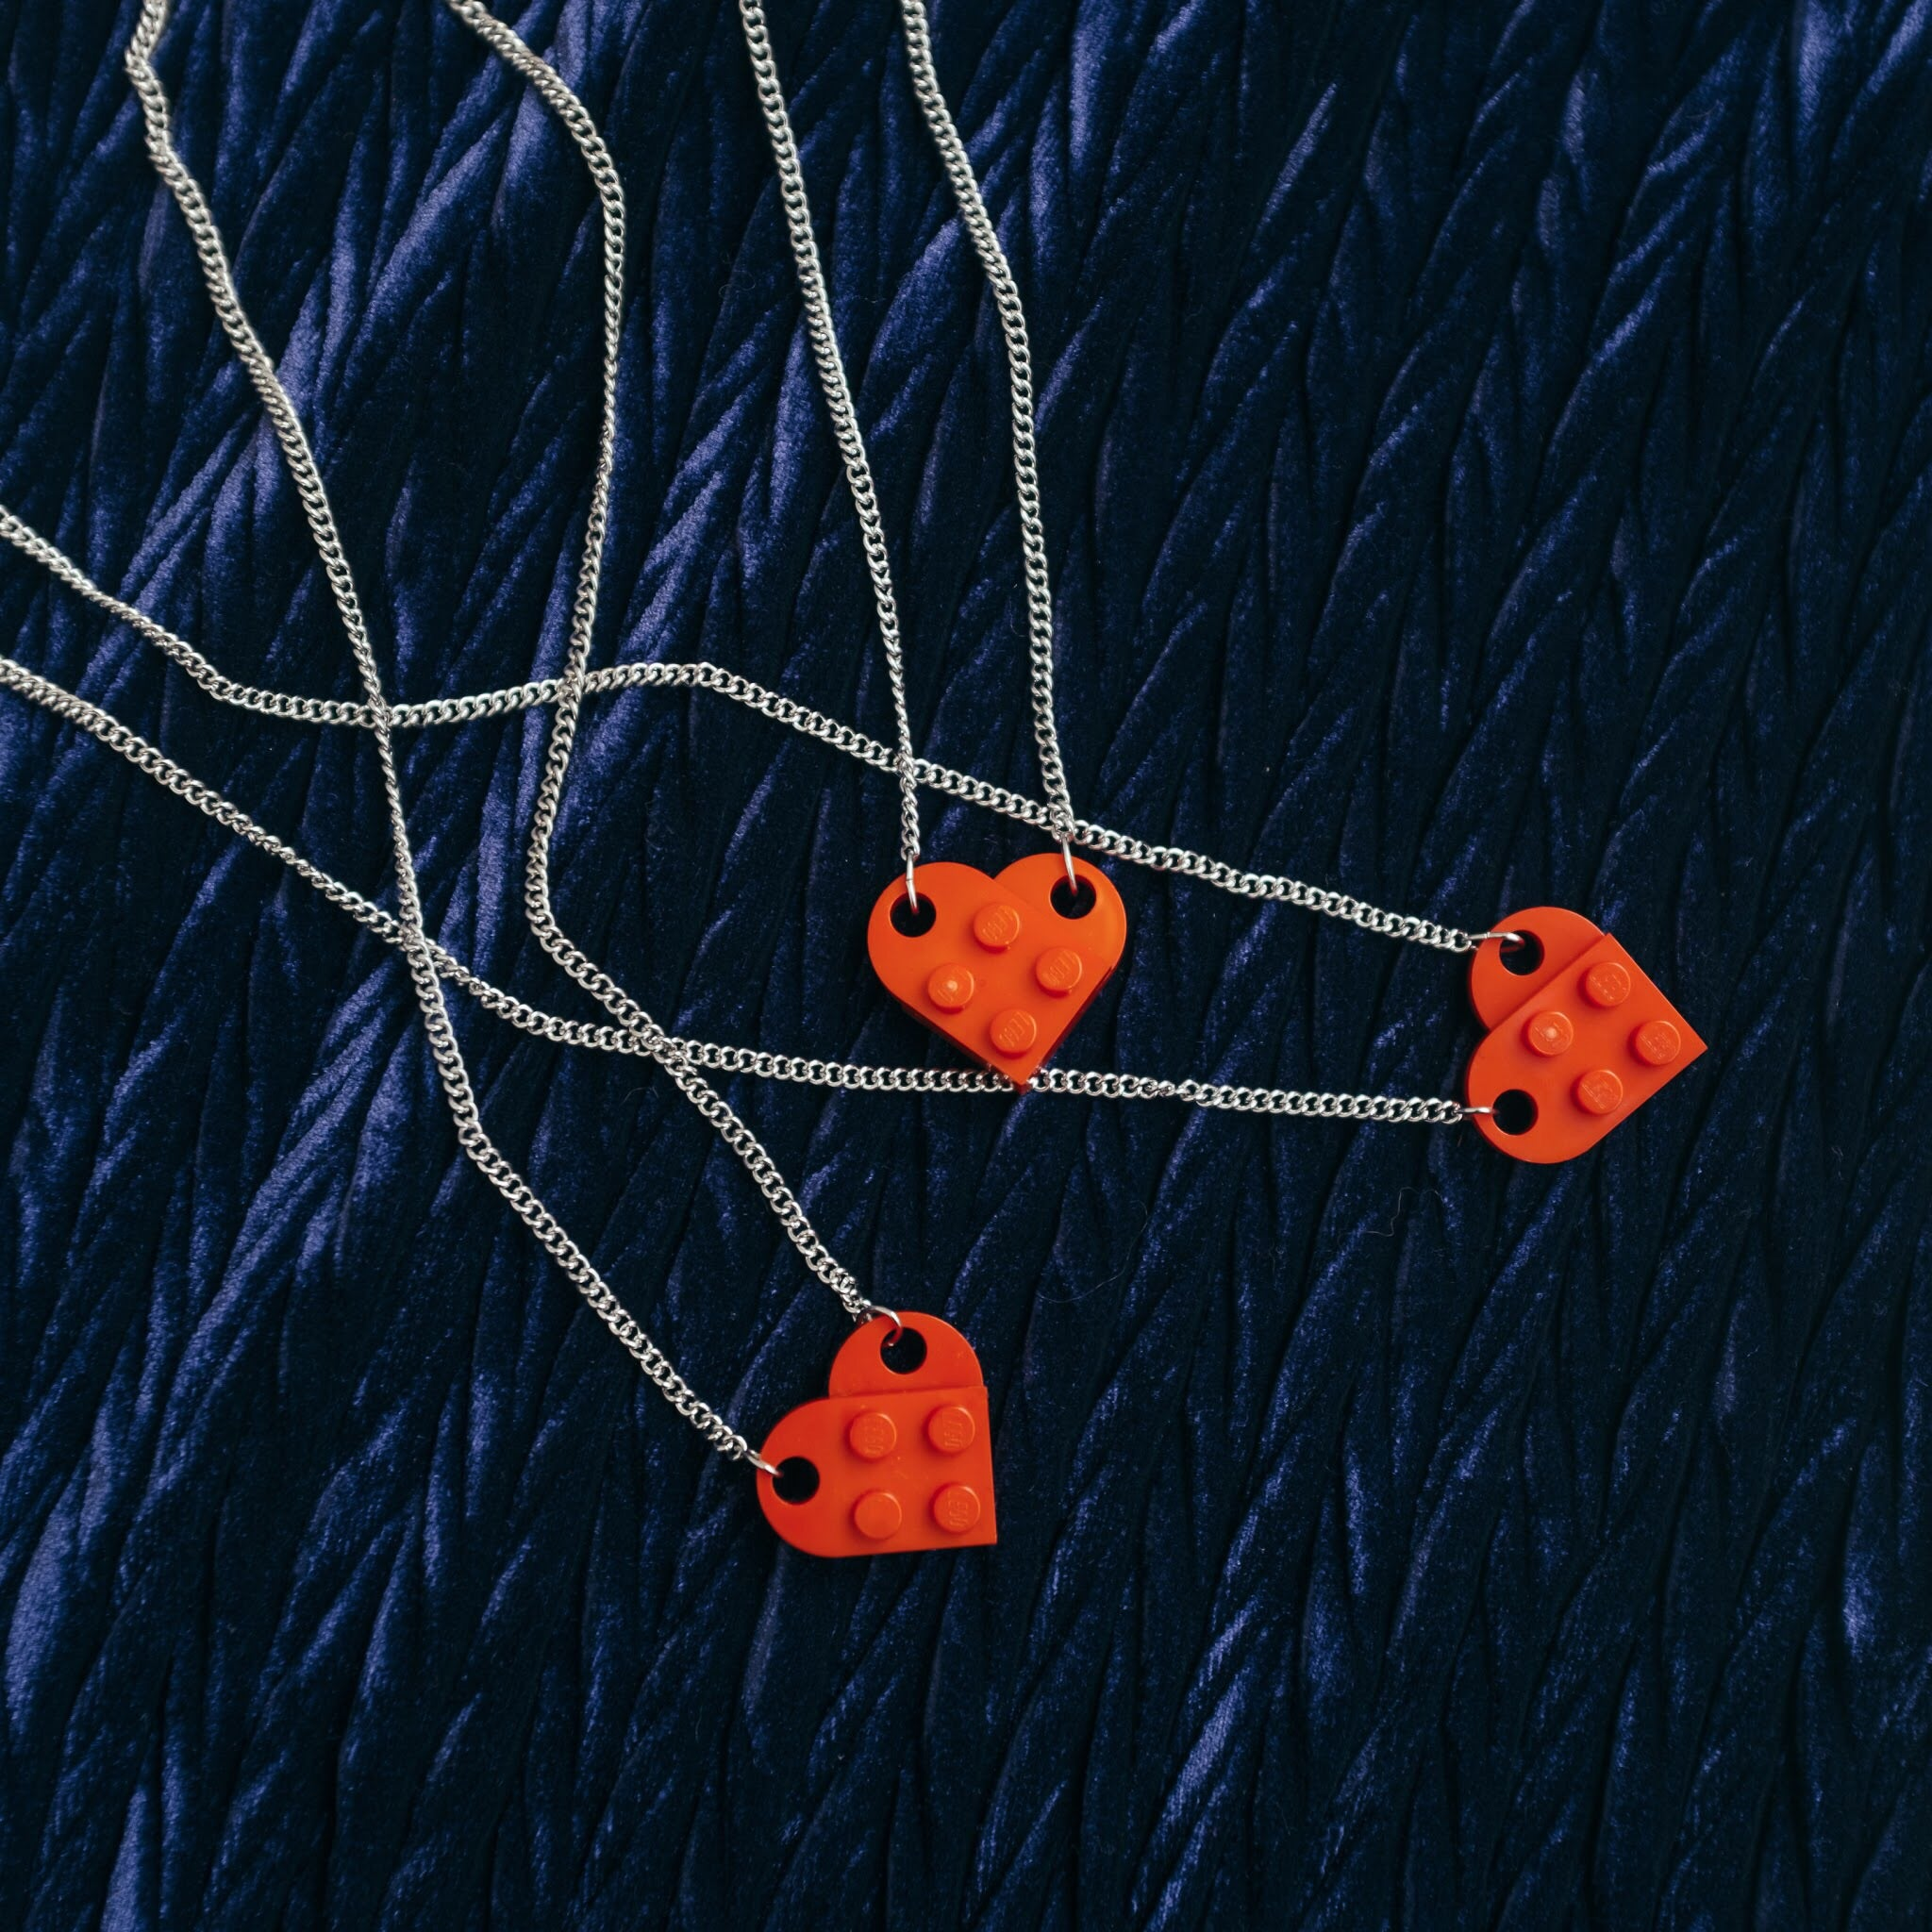 LEGO heart necklace